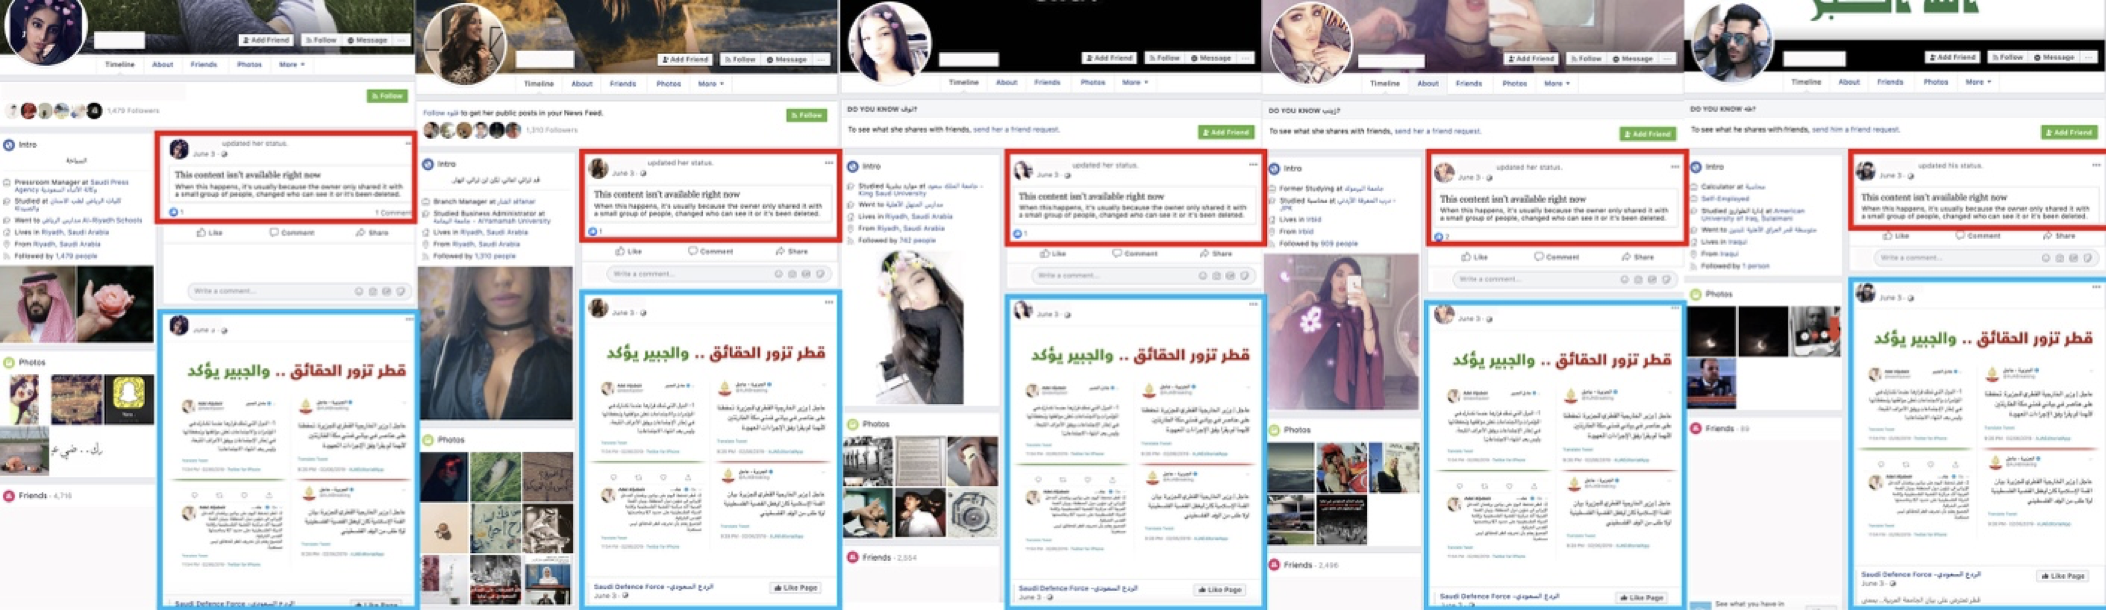 Royally Removed: Facebook Takes Down Pages Promoting Saudi Interests.